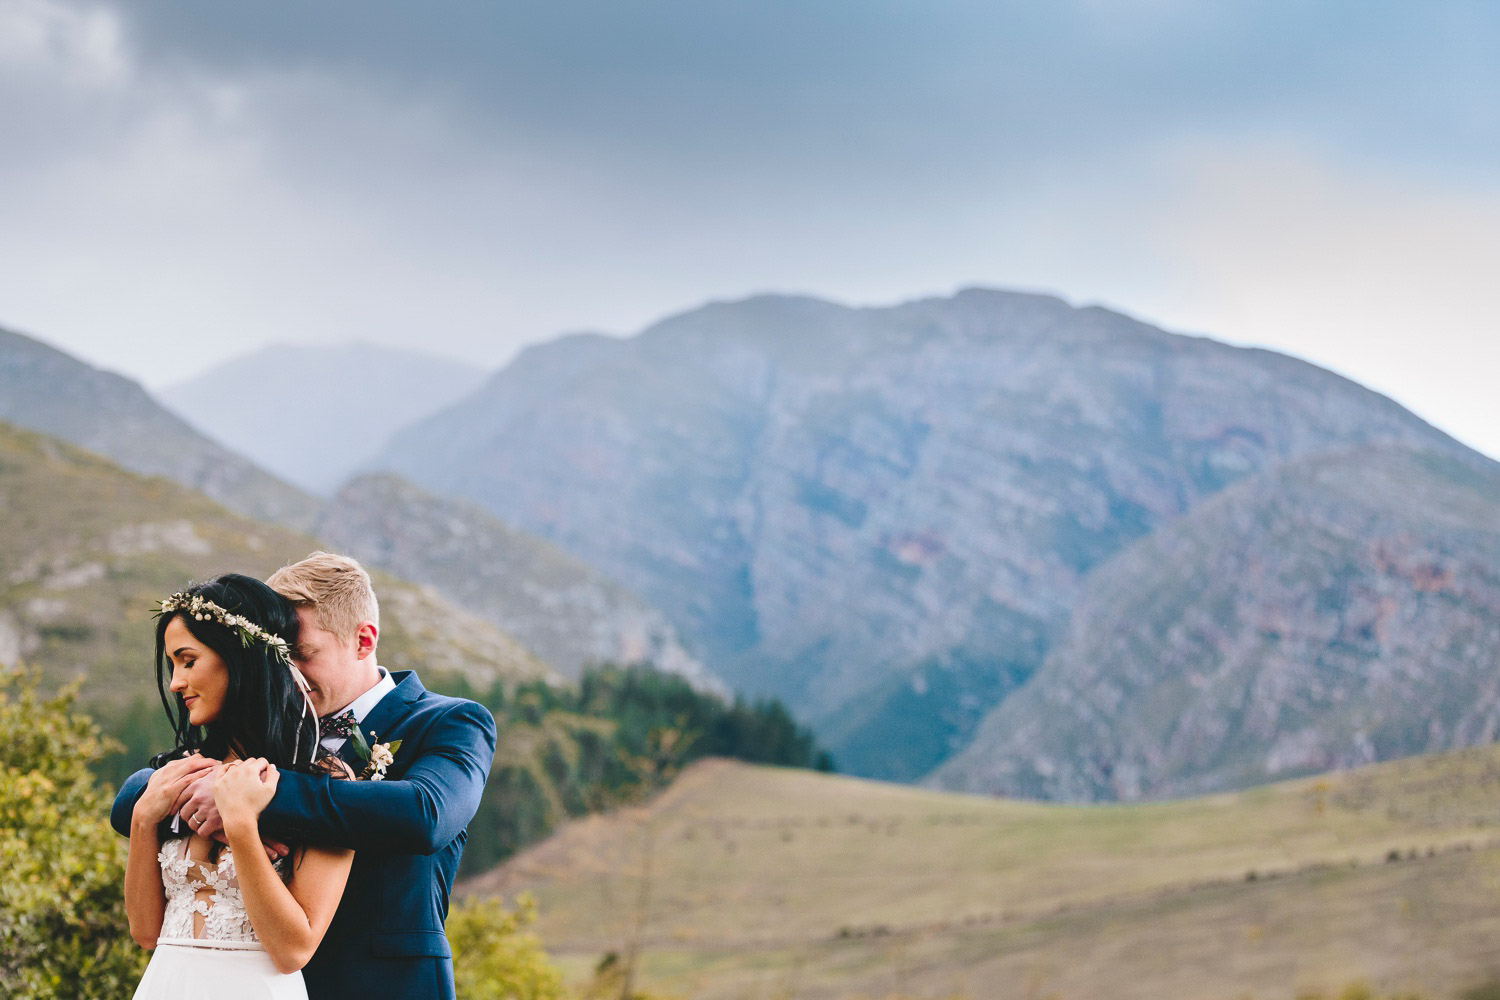 western-cape-photoghers-gen-scott-greyton-wedding-photography-charlie-ray100.jpg